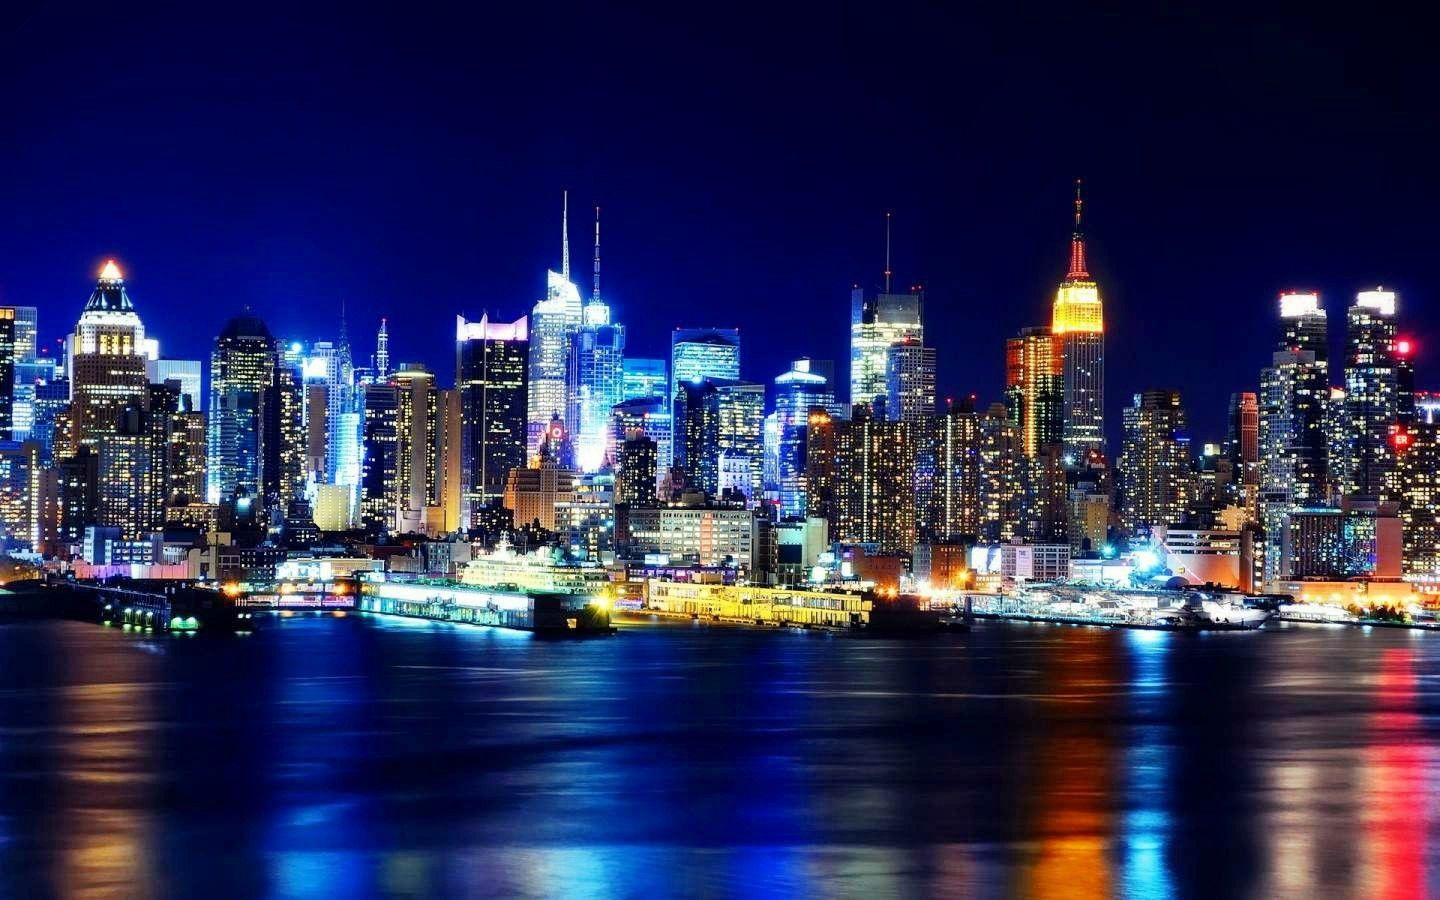 ArchitectureIMG.com - Night Time City Modern Skyscrapers Architecture Desktop Background Images